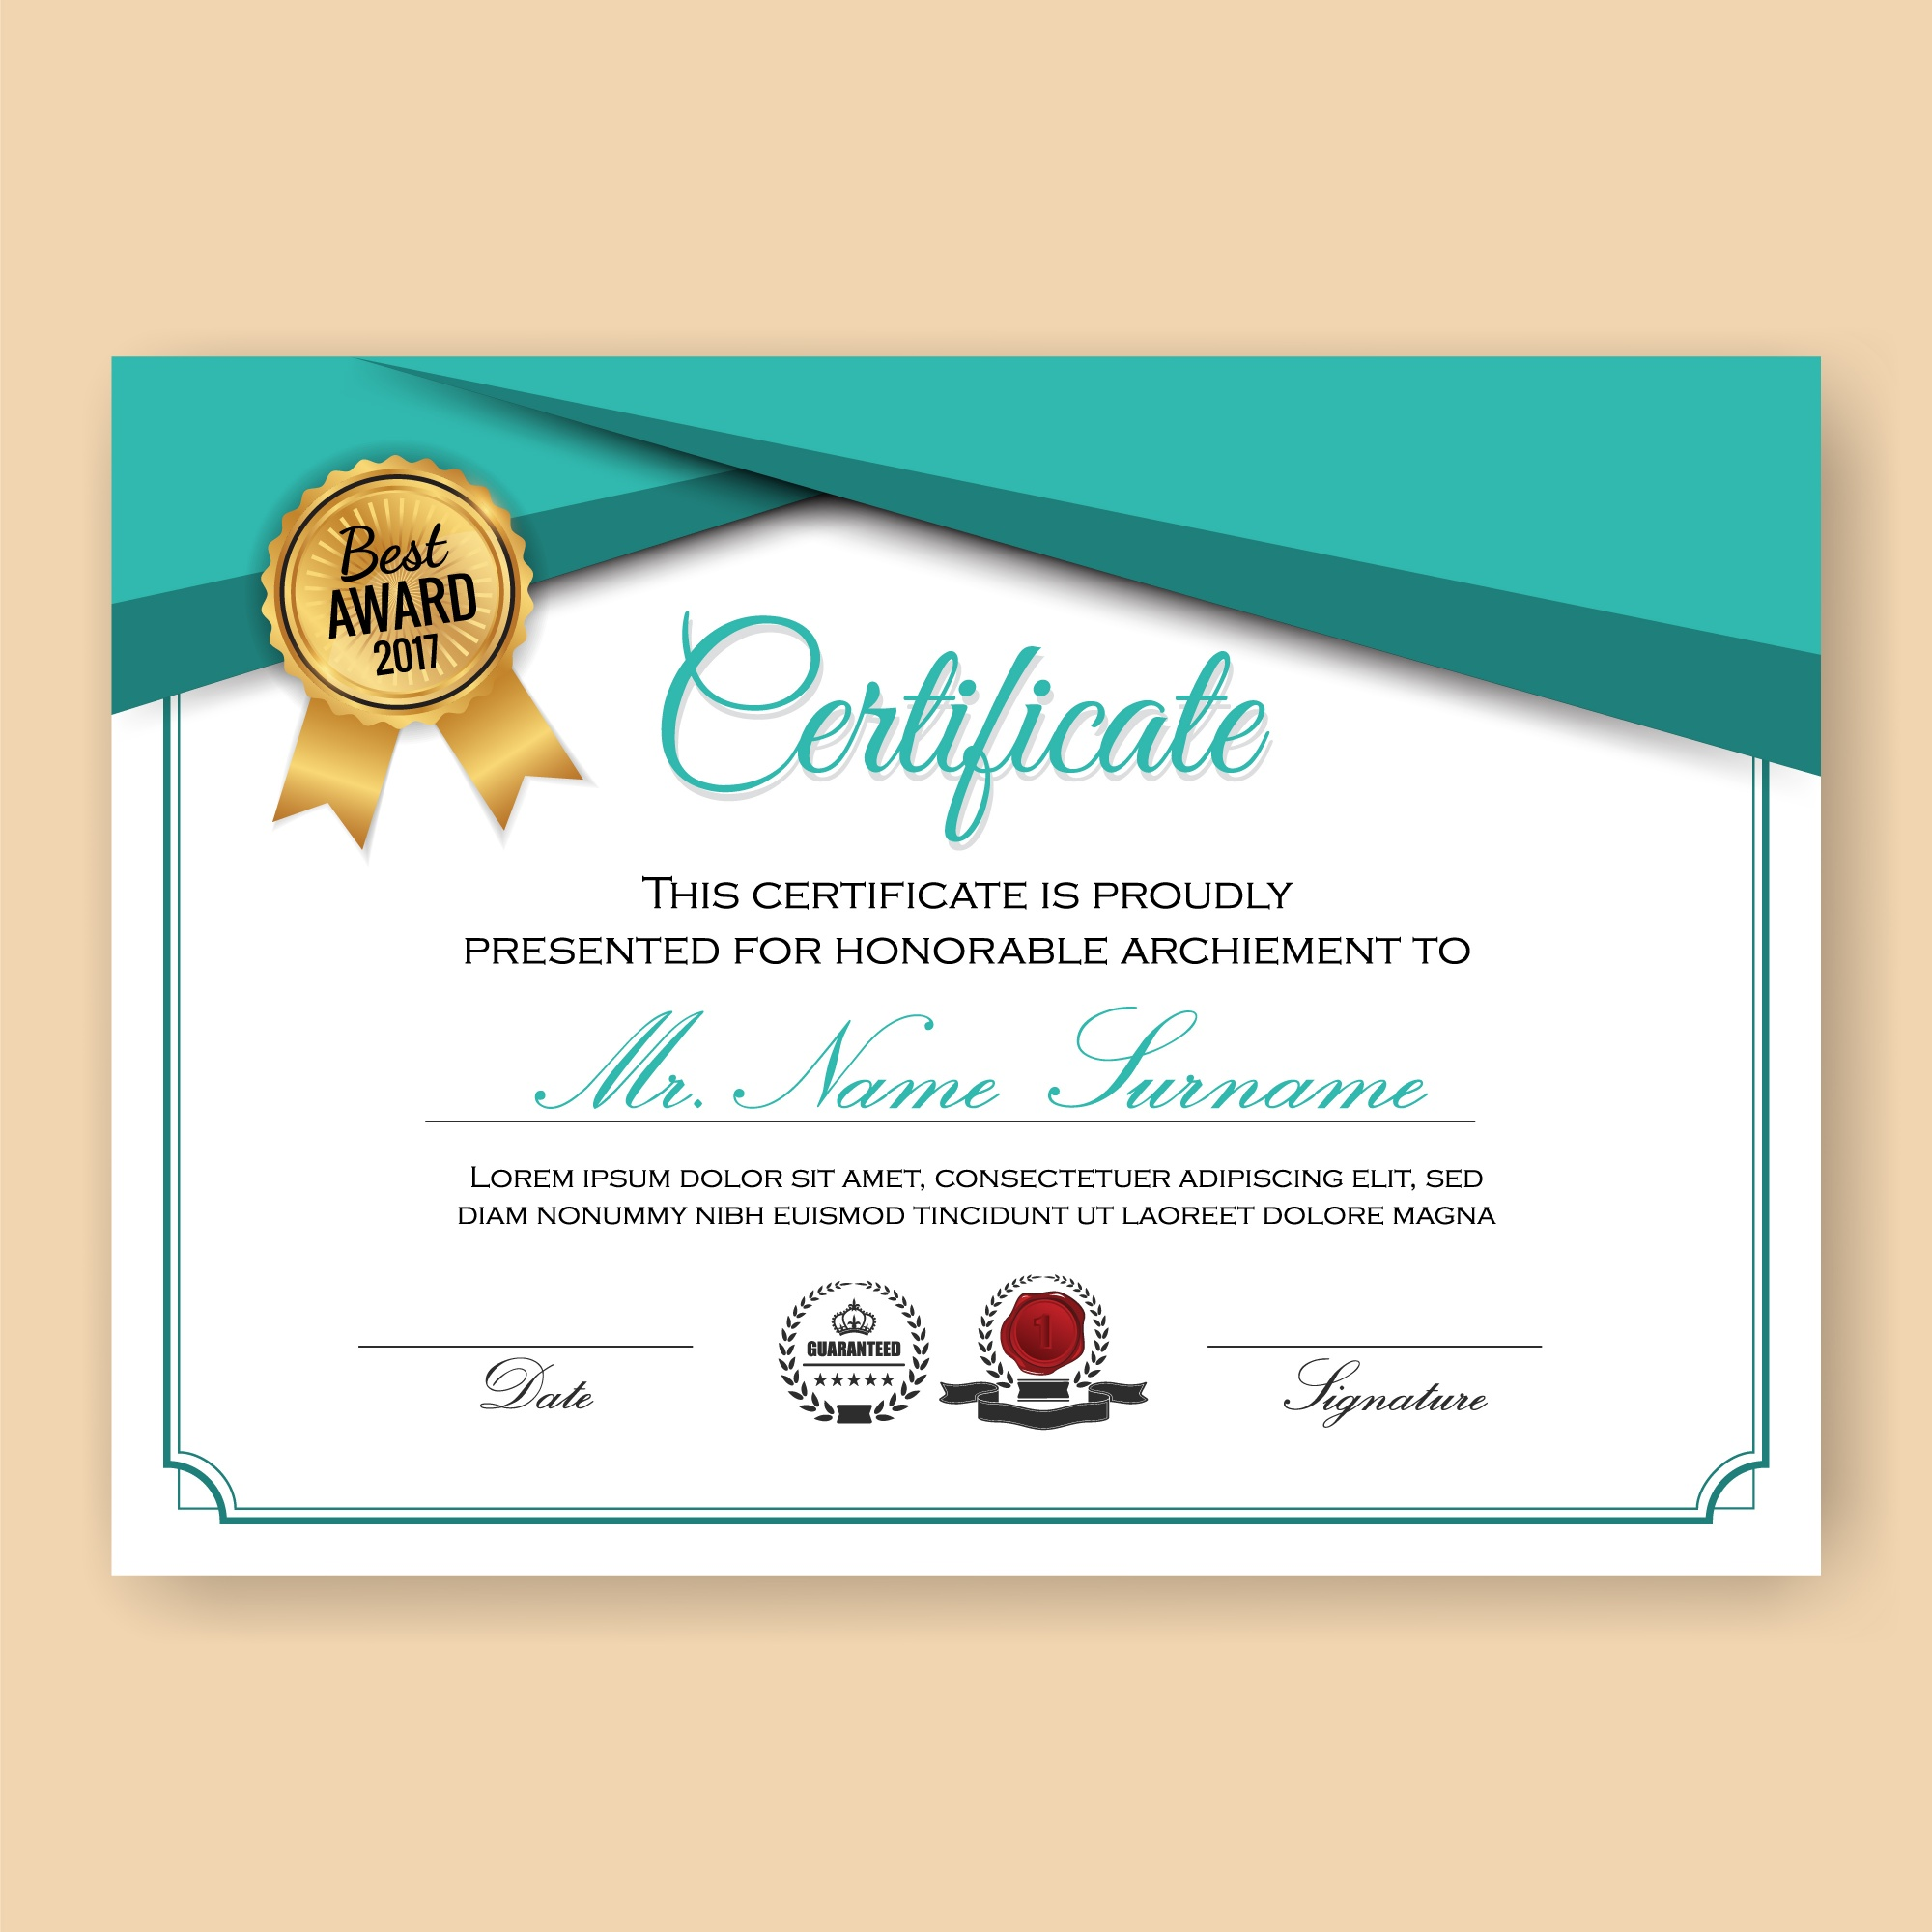 Modern Verified Certificate Background Template with Turquoise Color Scheme